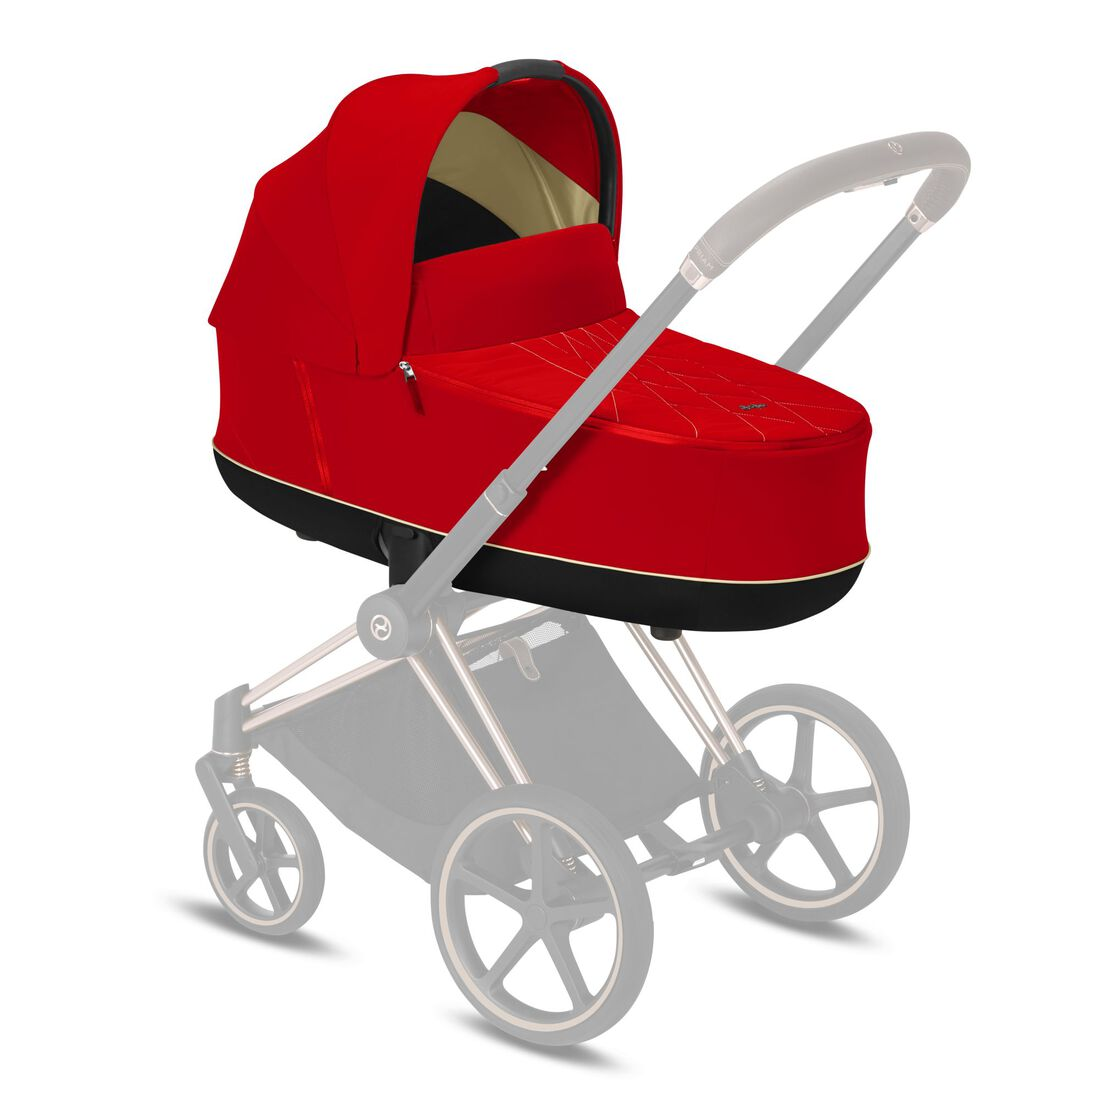 CYBEX Priam Lux Carry Cot - Autumn Gold in Autumn Gold large Bild 5